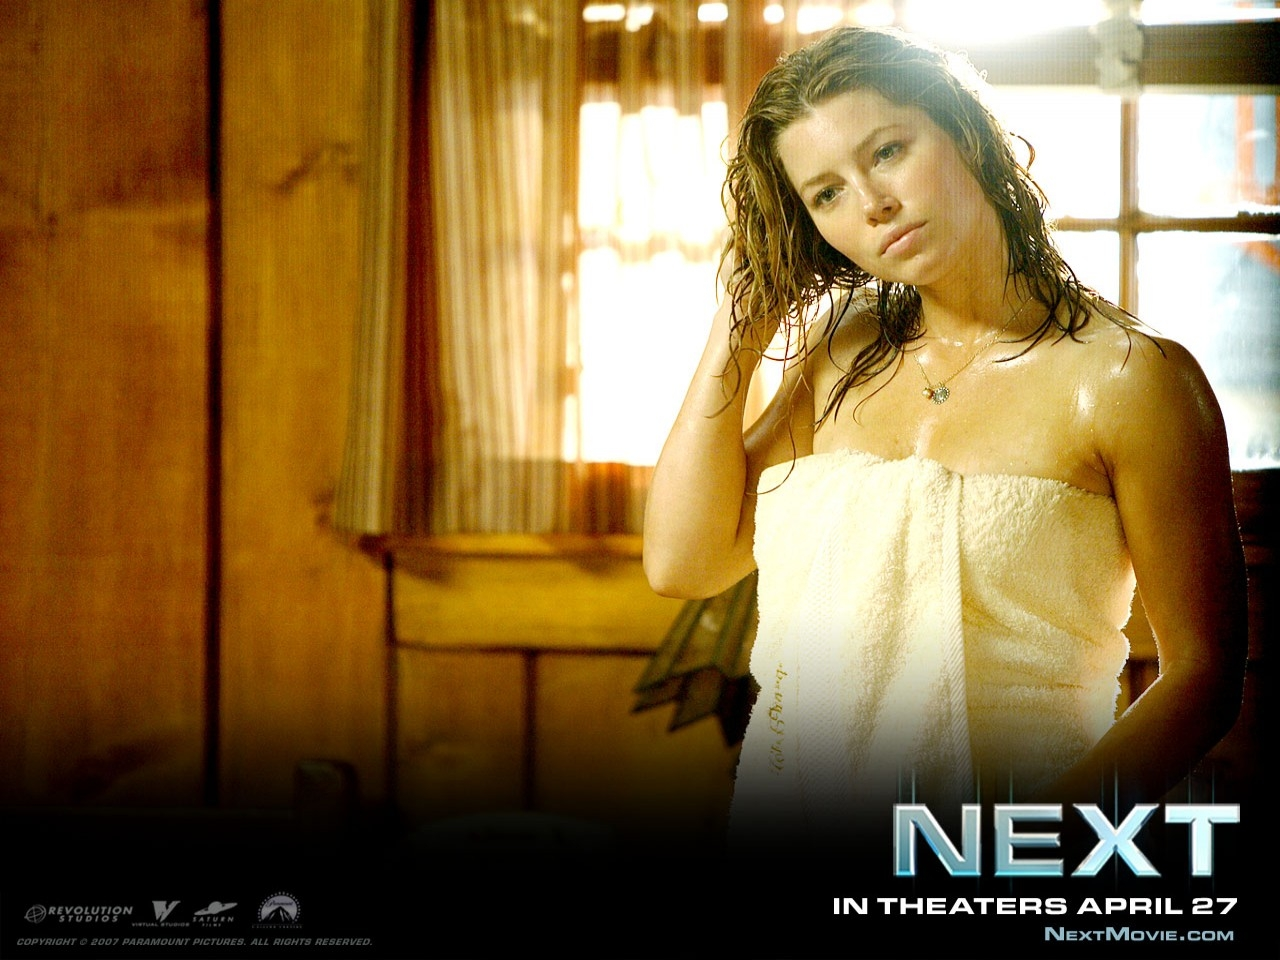 Wallpaper di Jessica Biel nel film Next